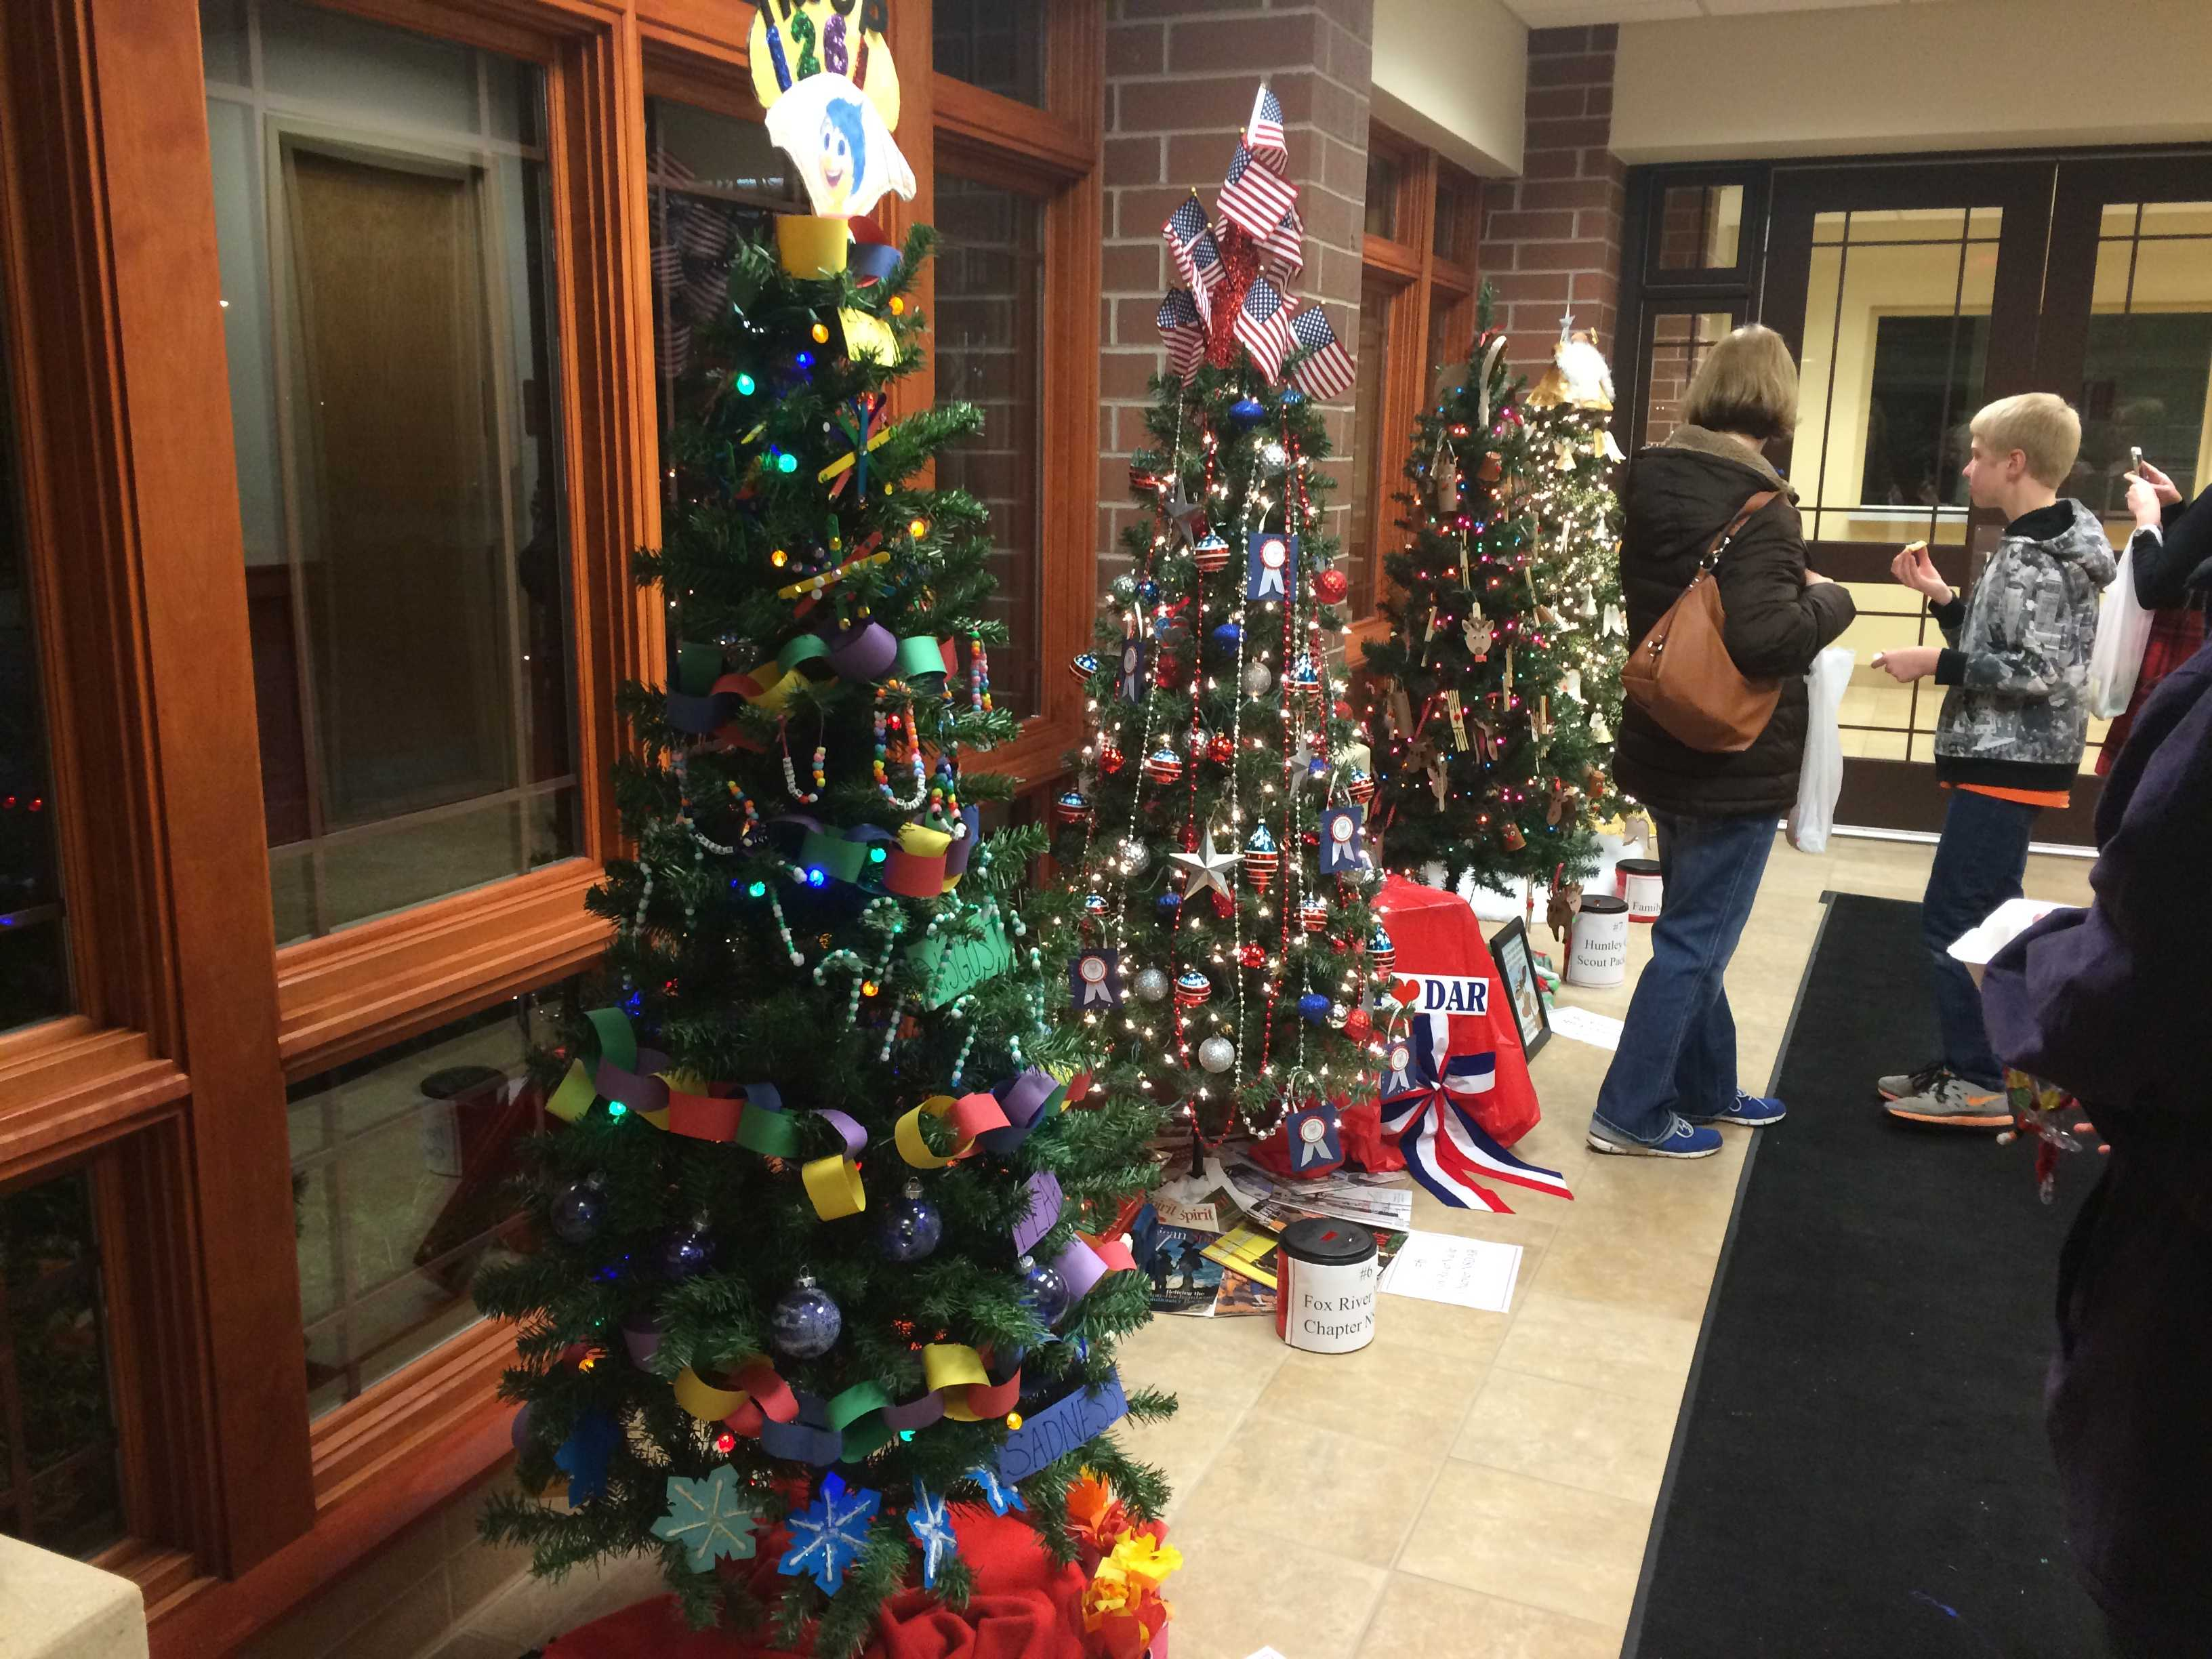 At A Very Merry Huntley, there was a Christmas tree decorating contest including trees from Willow Creek and KinderCare.